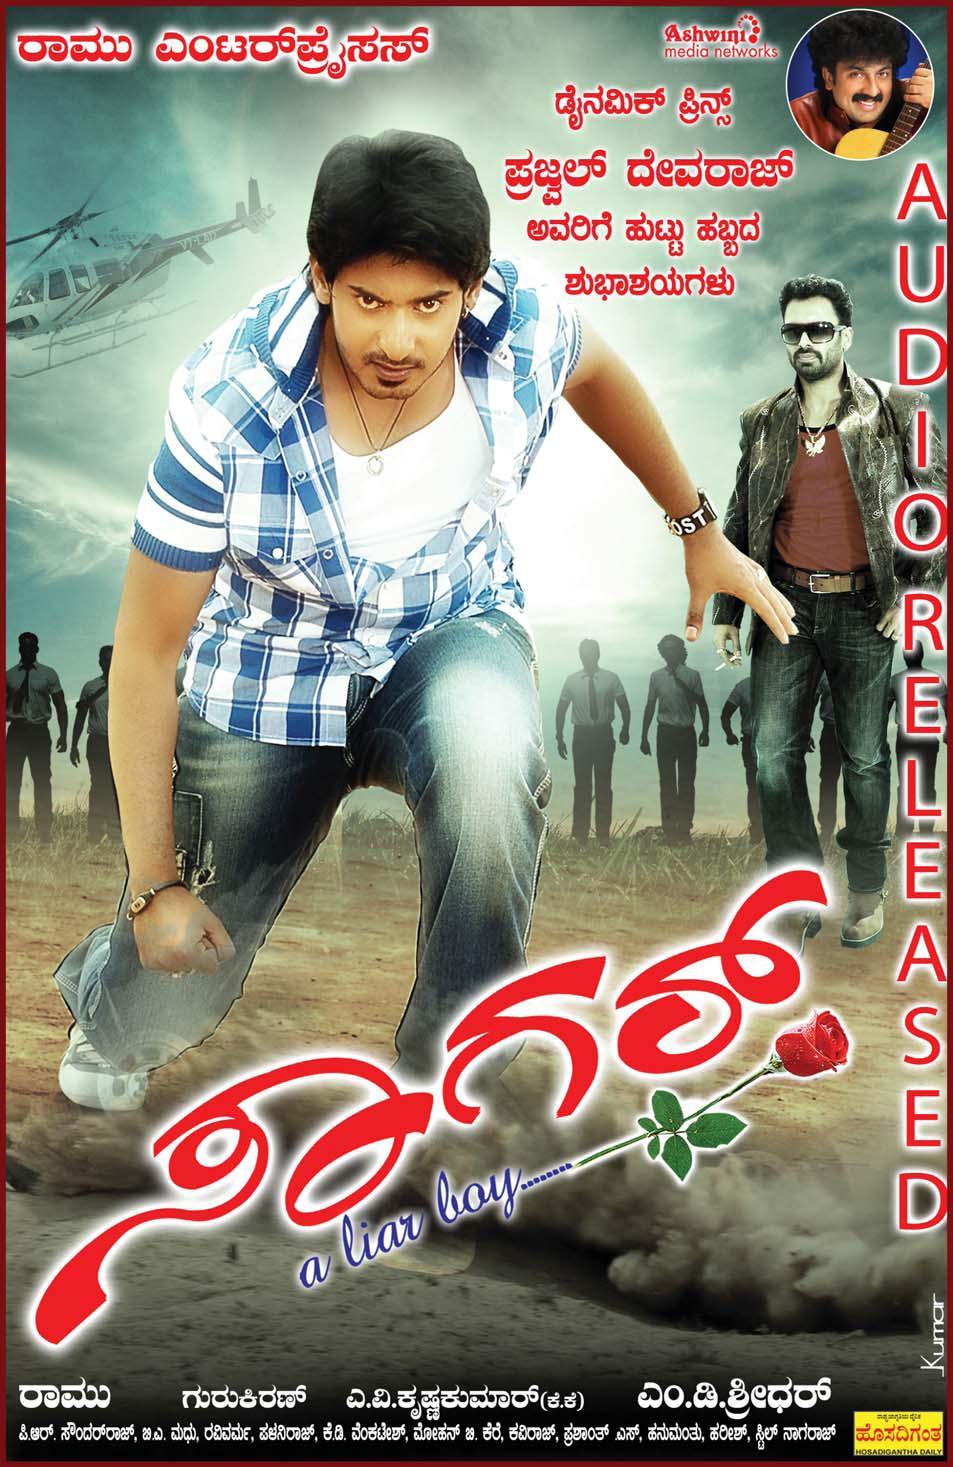 Sagar (2012) Kannada Movie Songs Free Download